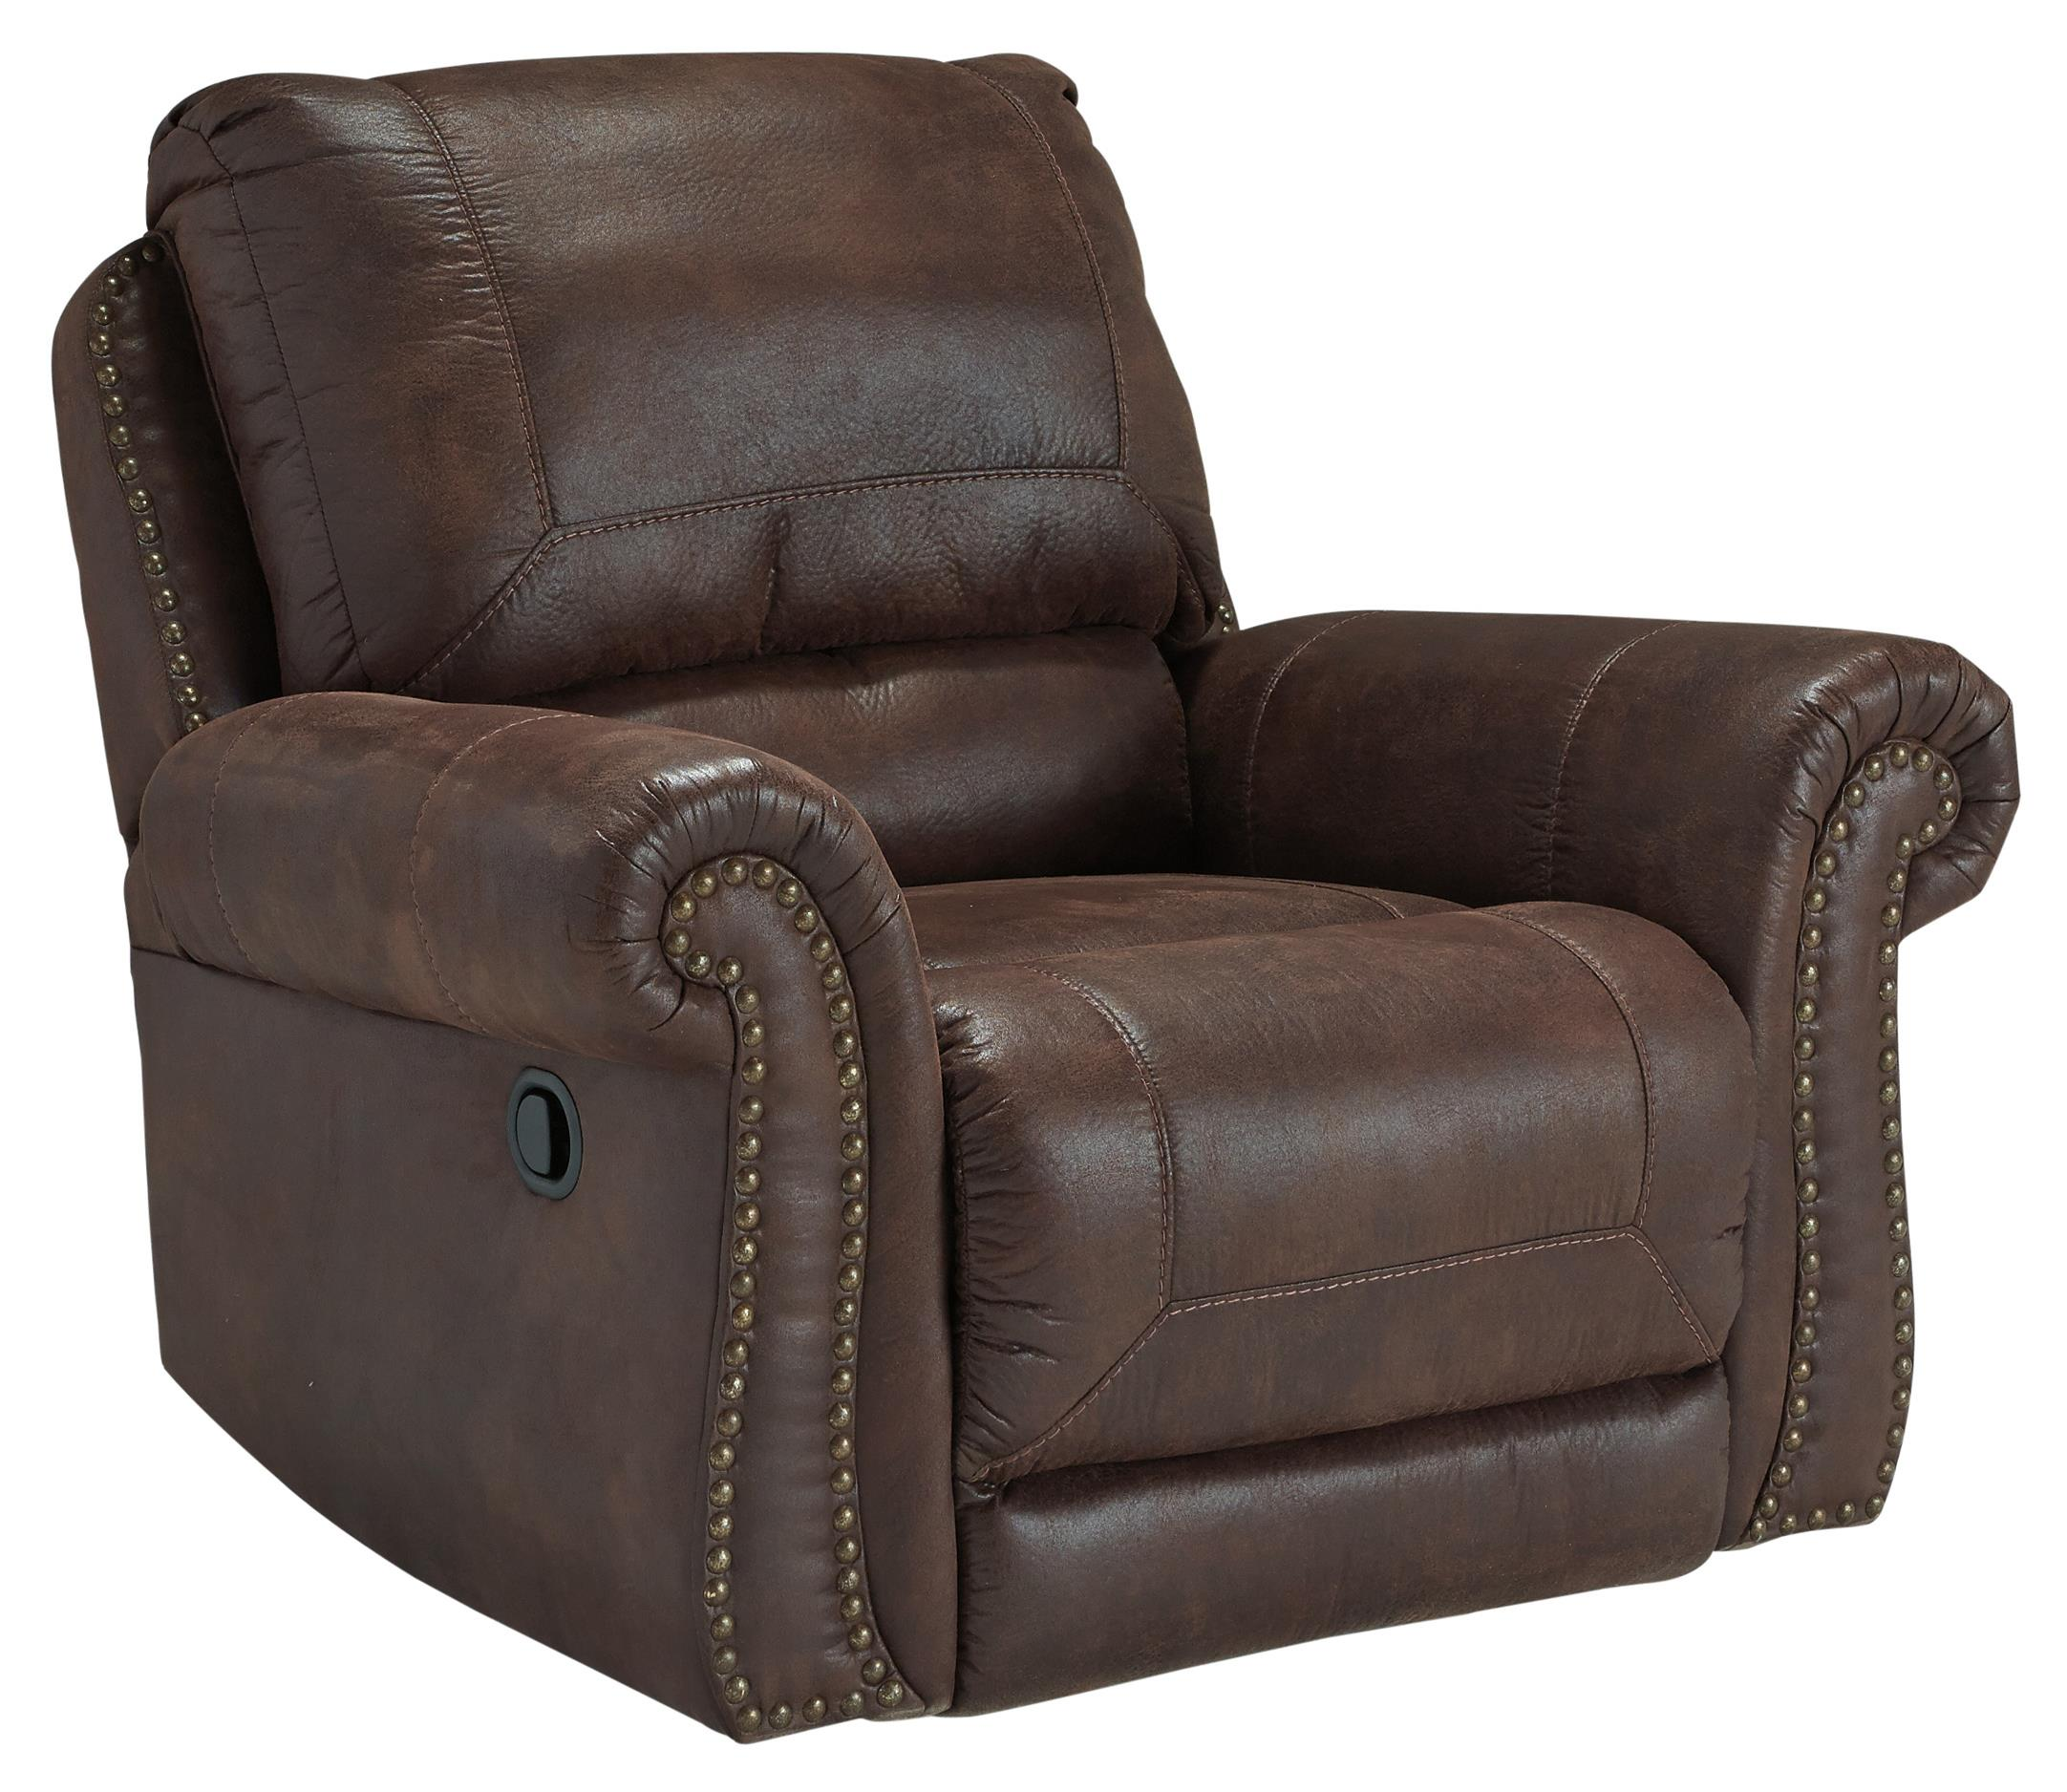 Breville Rocker Recliner by Benchcraft at Furniture Superstore - Rochester, MN